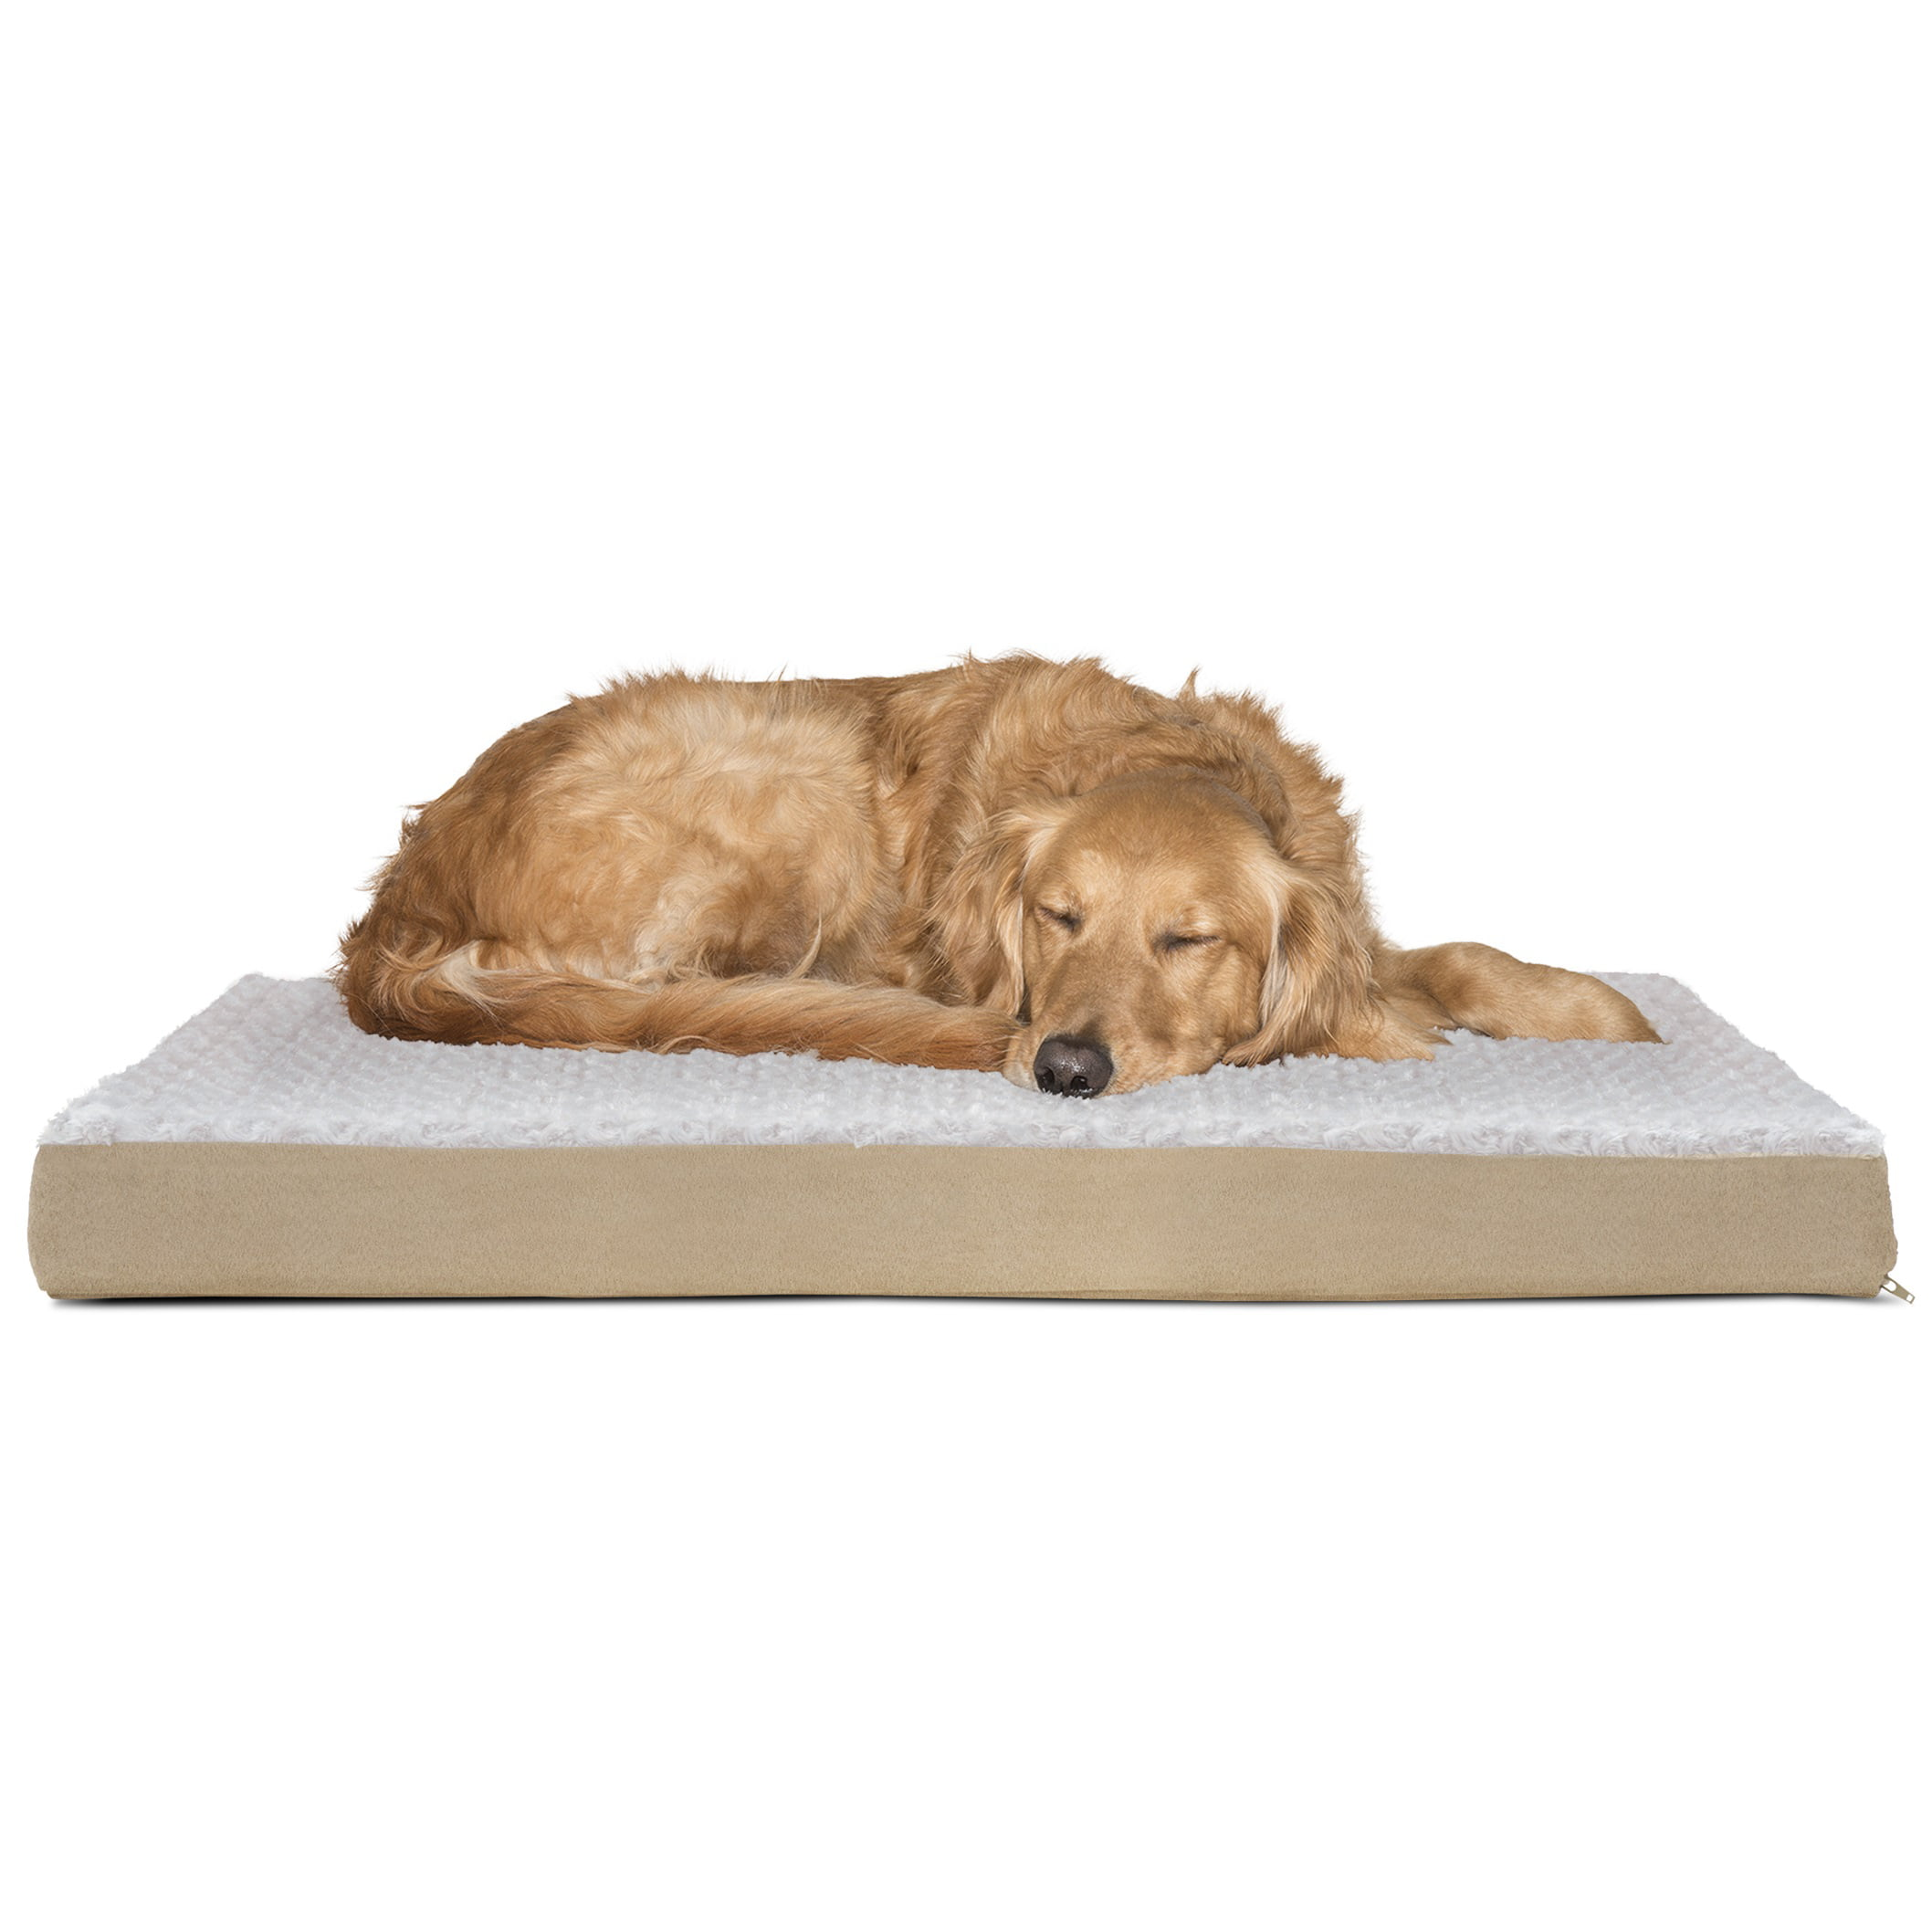 FurHaven Pet Dog Bed   Deluxe Orthopedic Ultra Plush Mattress Pet Bed for Dogs & Cats, Cream, Large